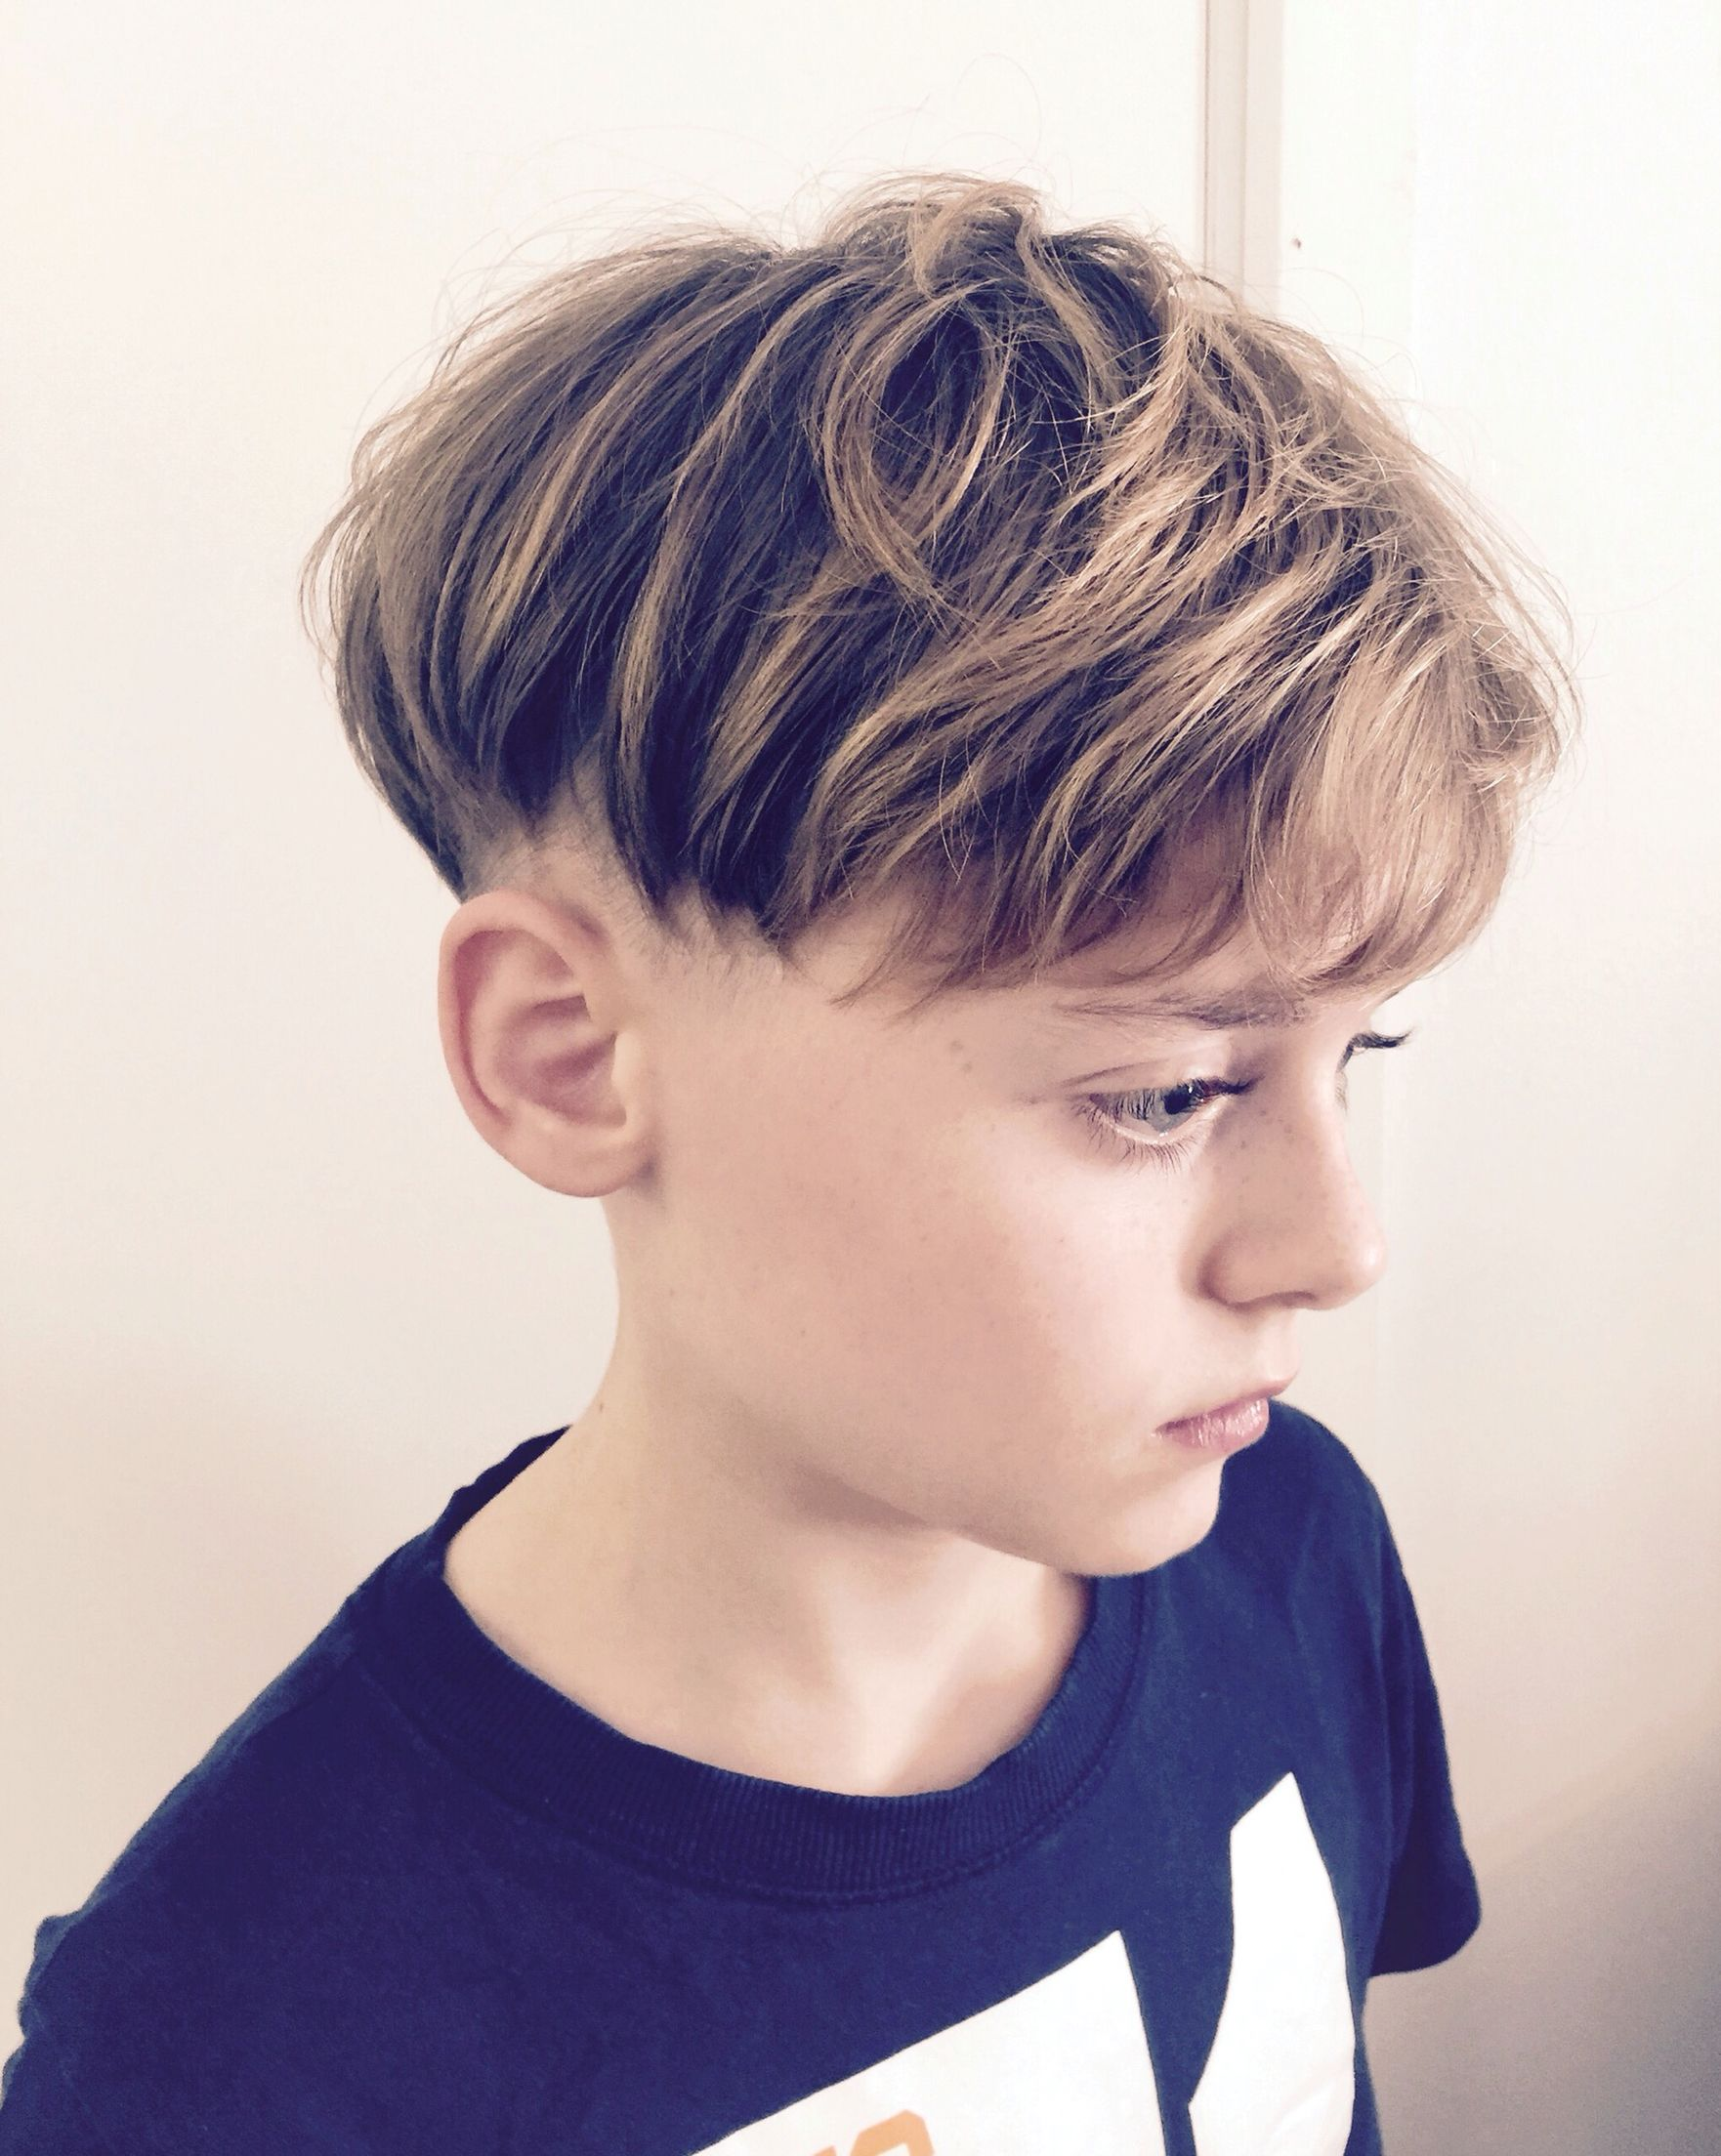 Boys Hair Haircuts Pinterest Boy Hair Haircuts And Bowl Cut